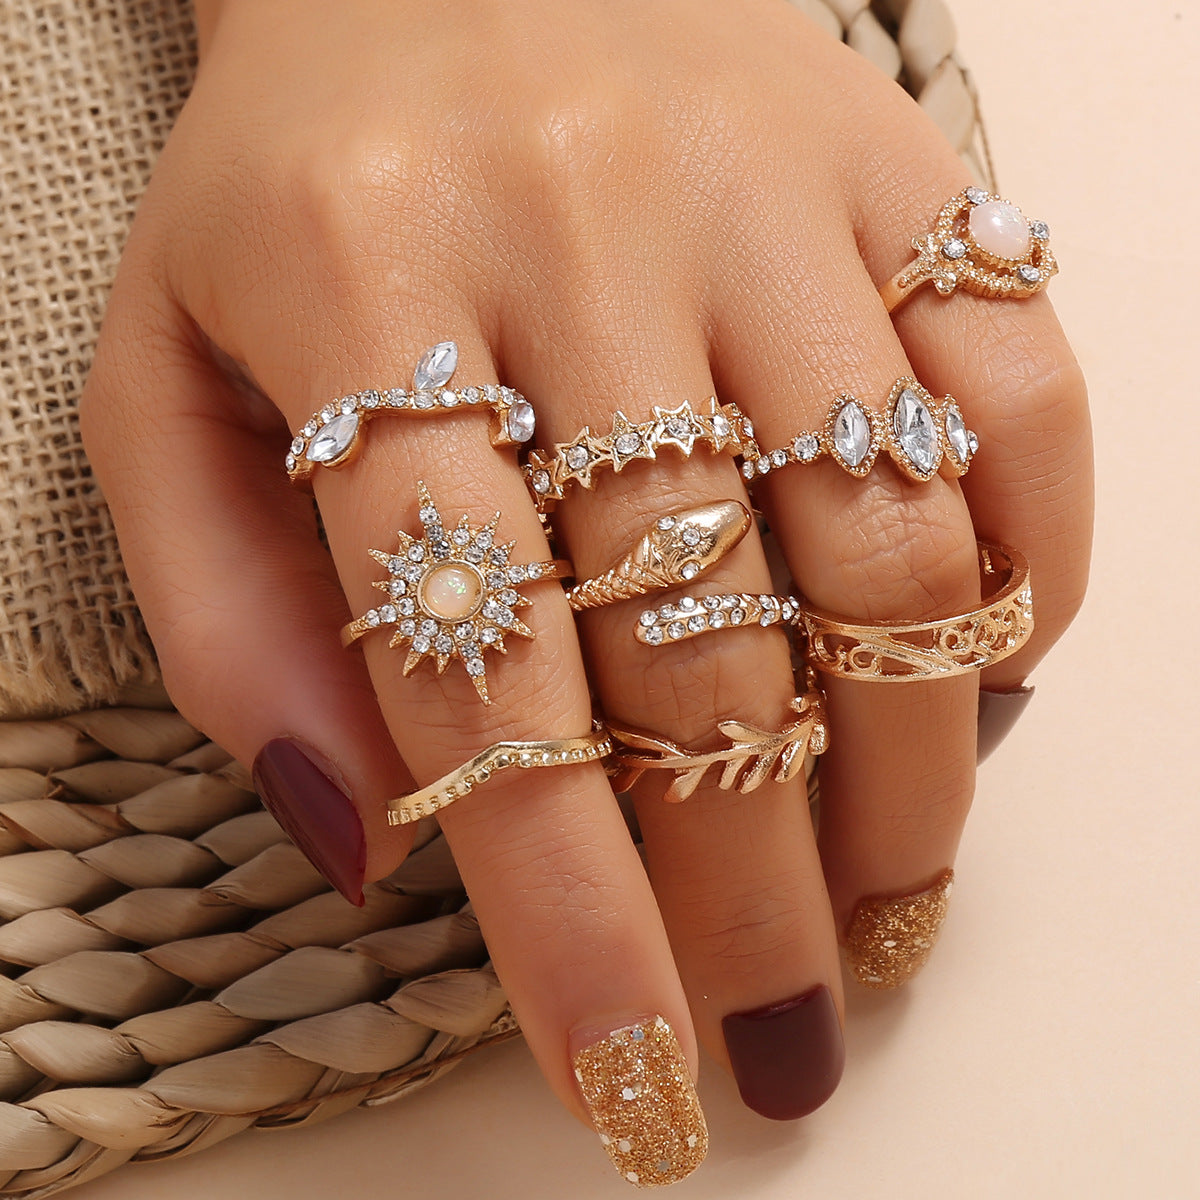 9-piece ring set with diamonds, carved leaves and branches